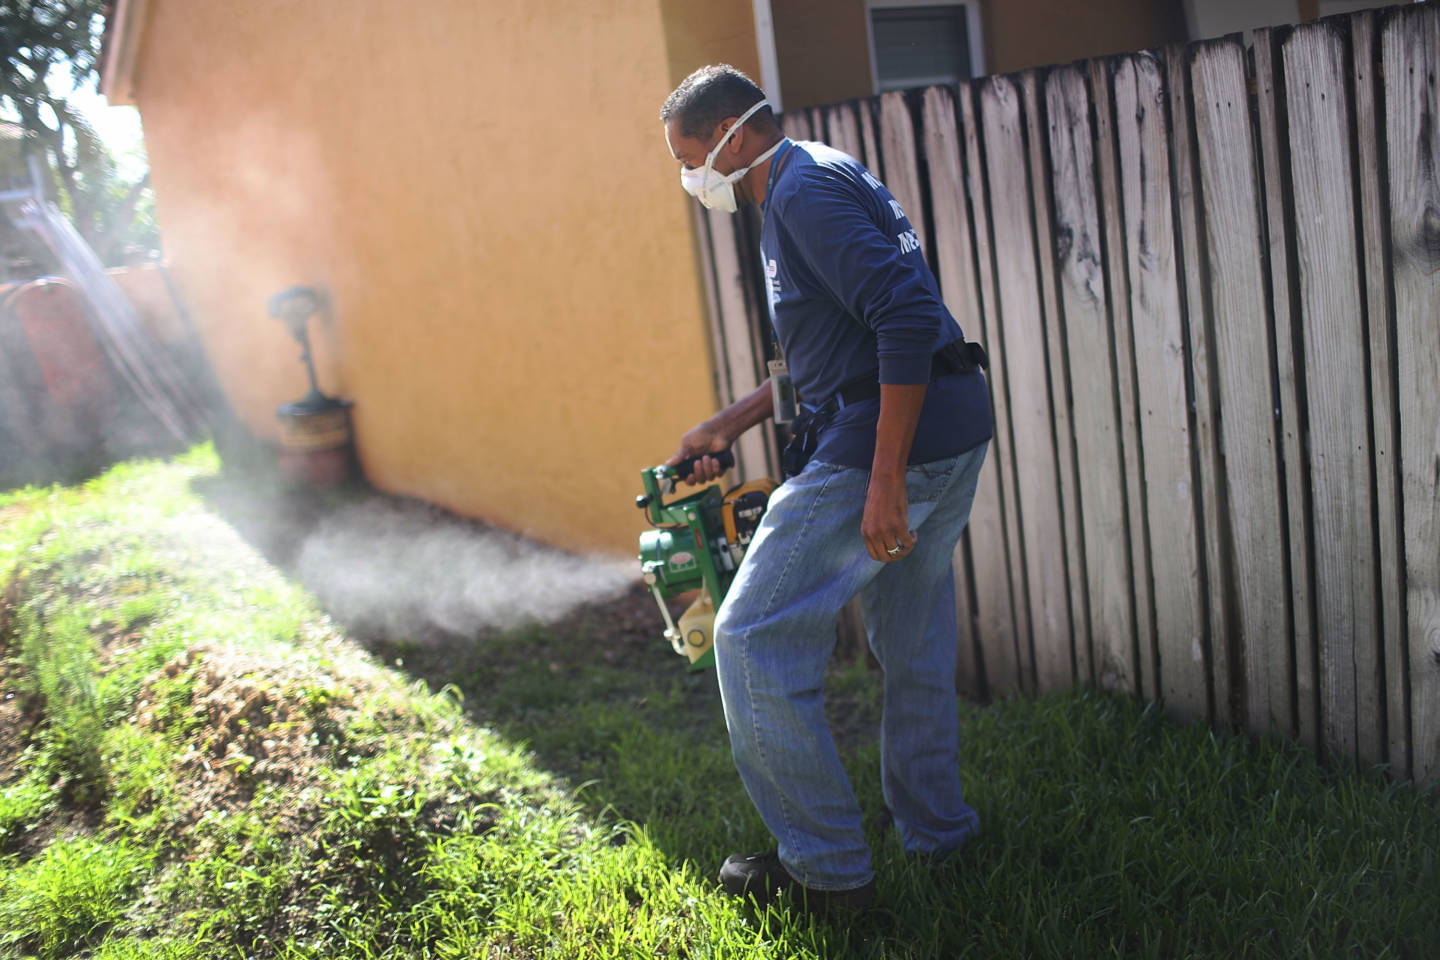 4 Zika Cases in Florida Are Likely From Mosquitoes